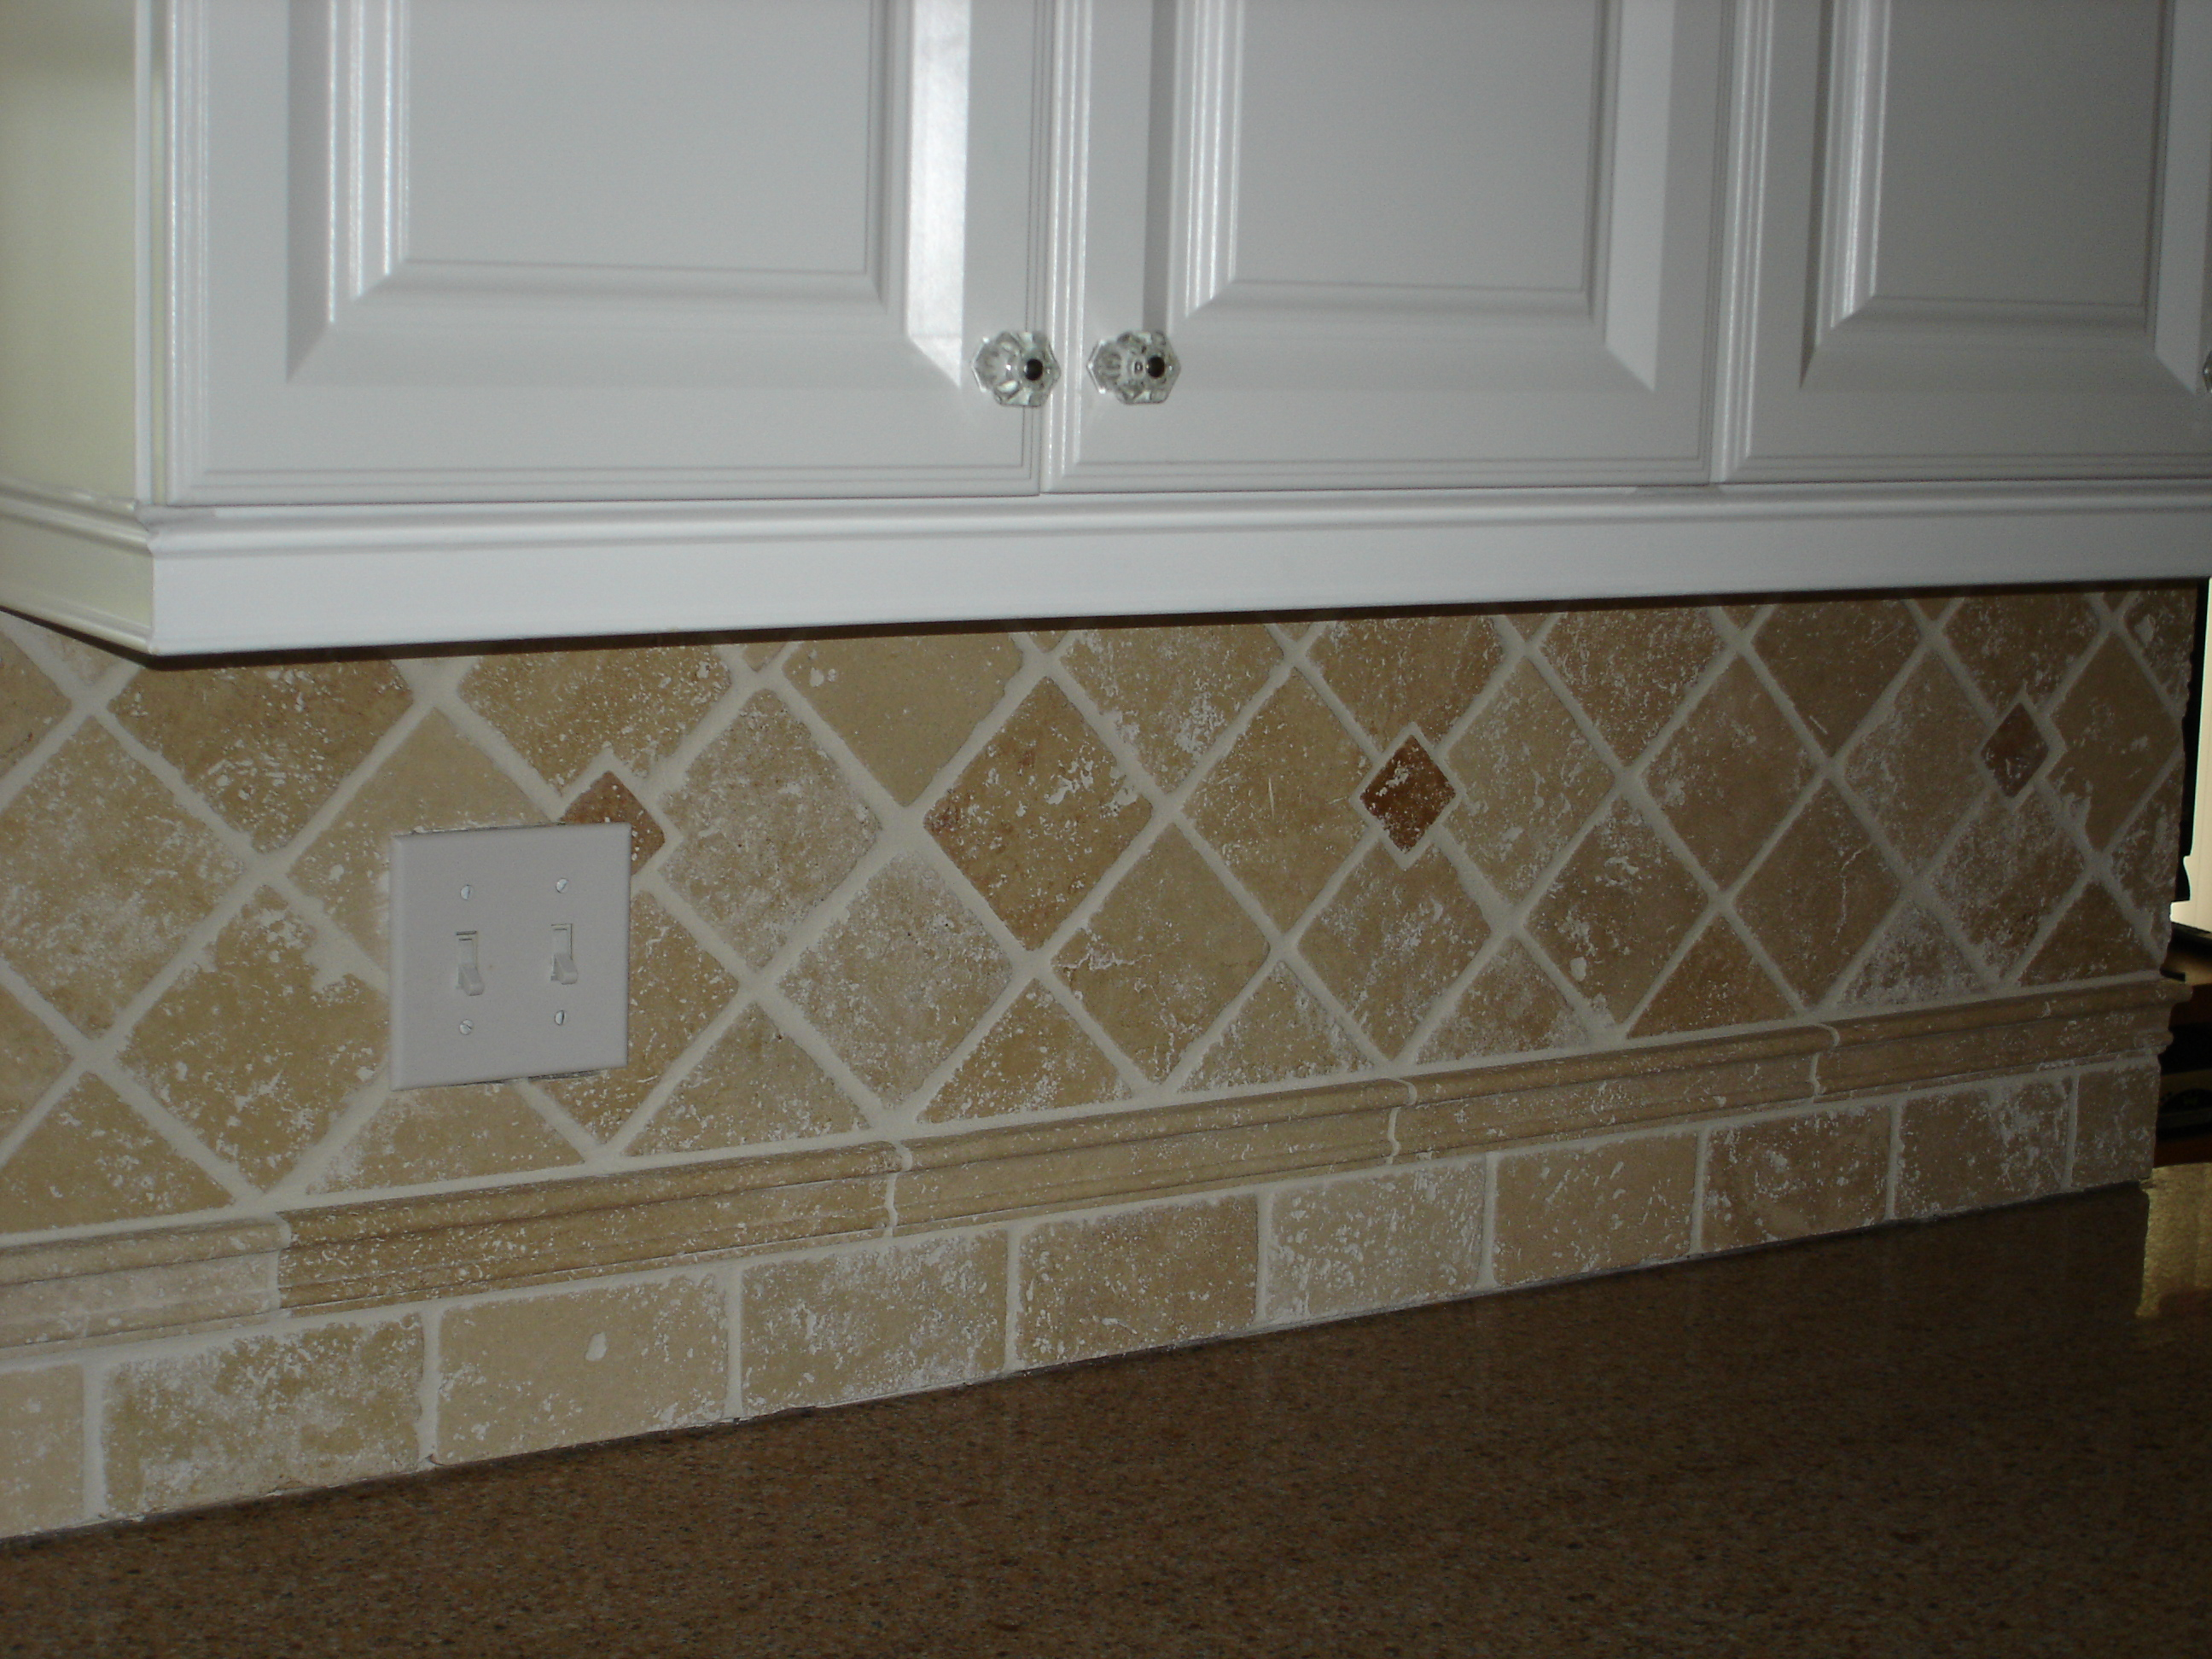 Tile Backsplashe Central Nj Jackson Freehold Colts Neck Brick Toms River